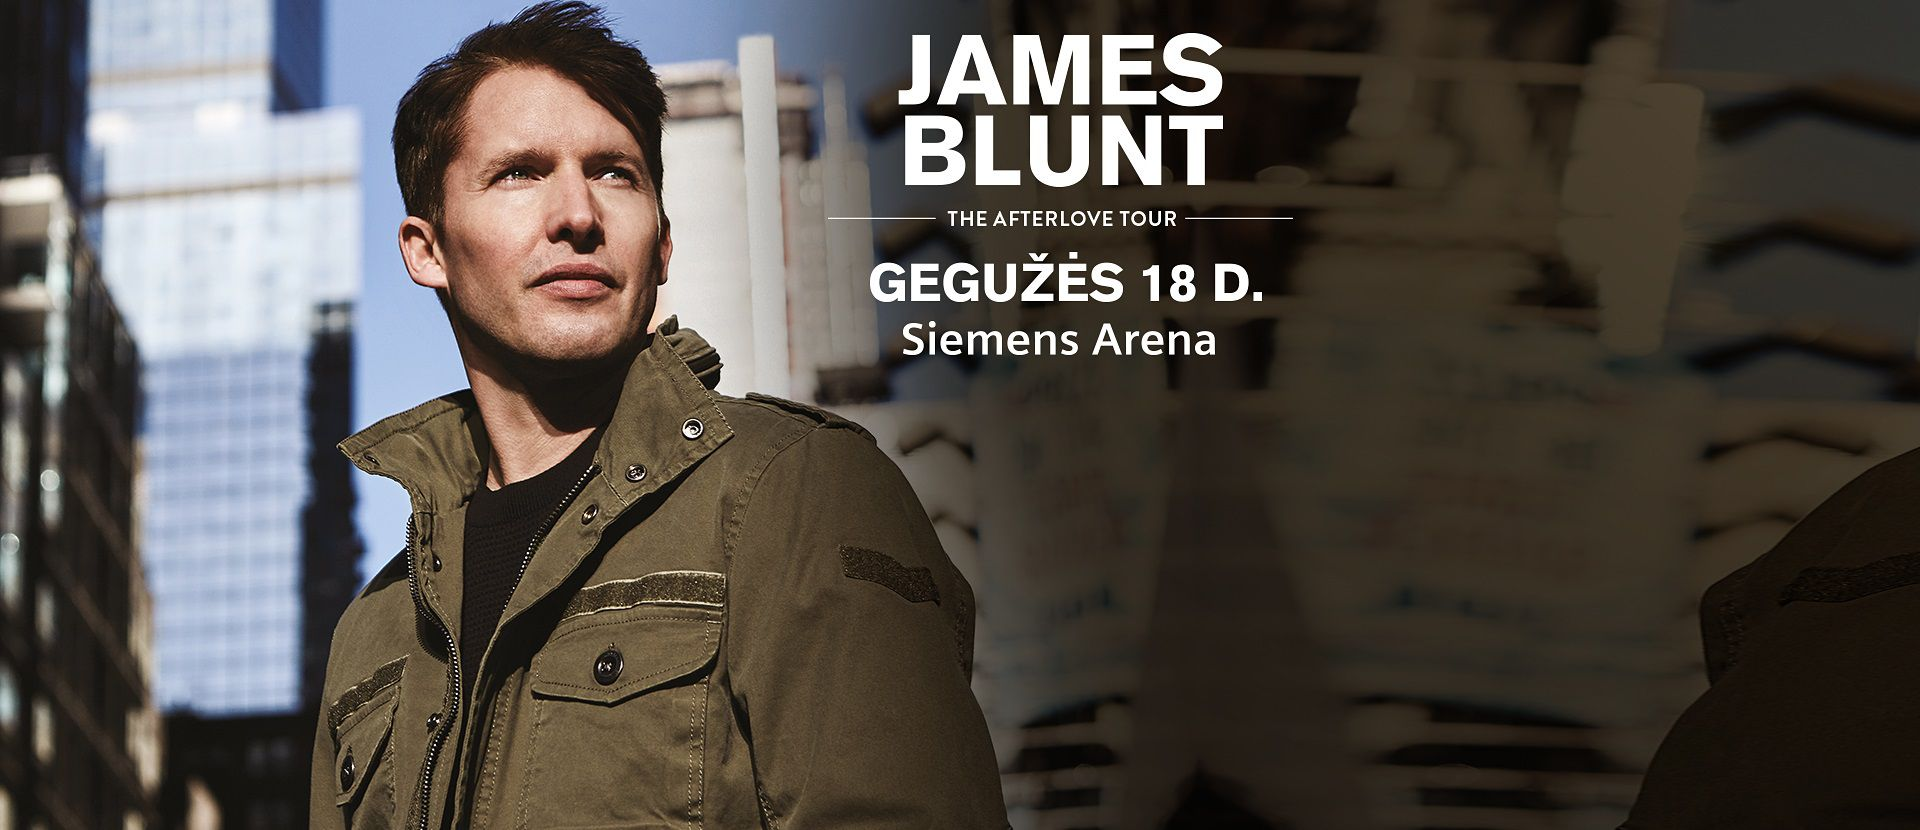 JAMES BLUNT THE AFTERLOVE TOUR